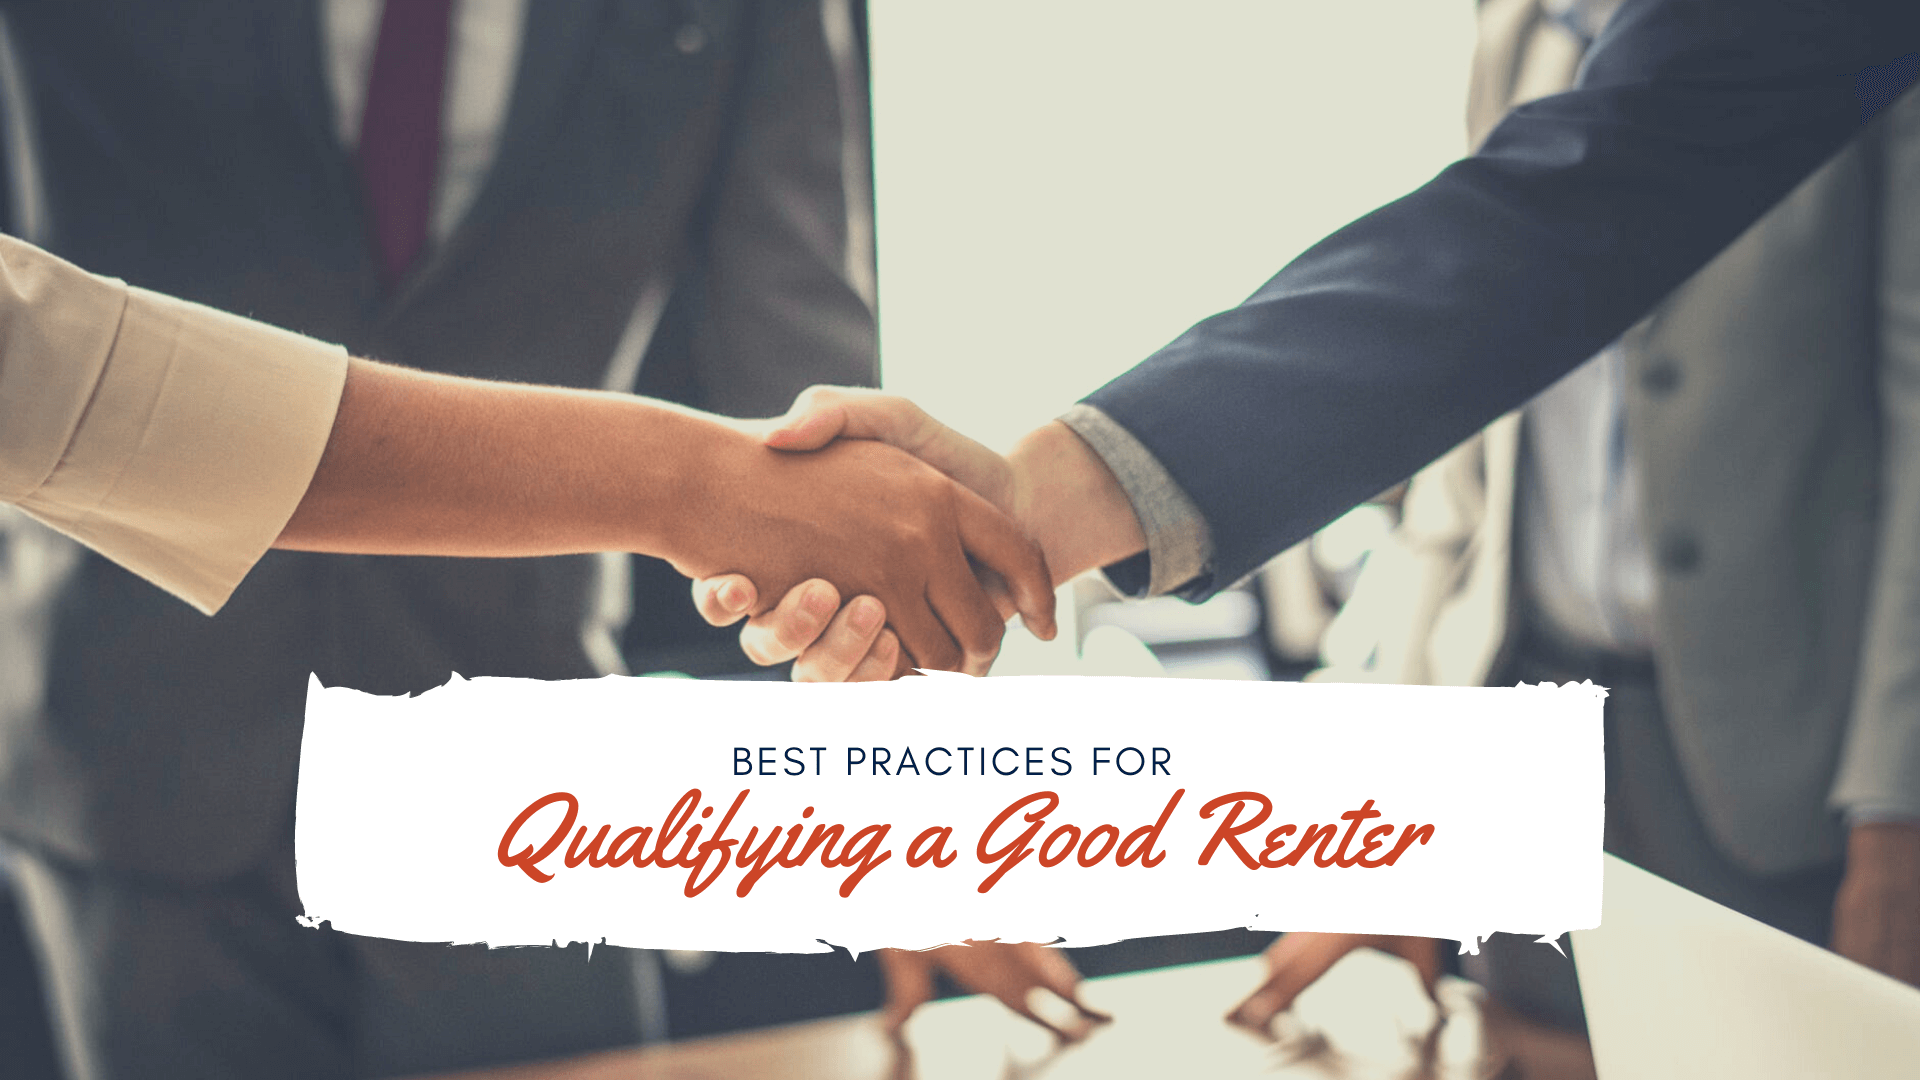 Tenant Screening in Grand Rapids Best Practices for Qualifying a Good Renter